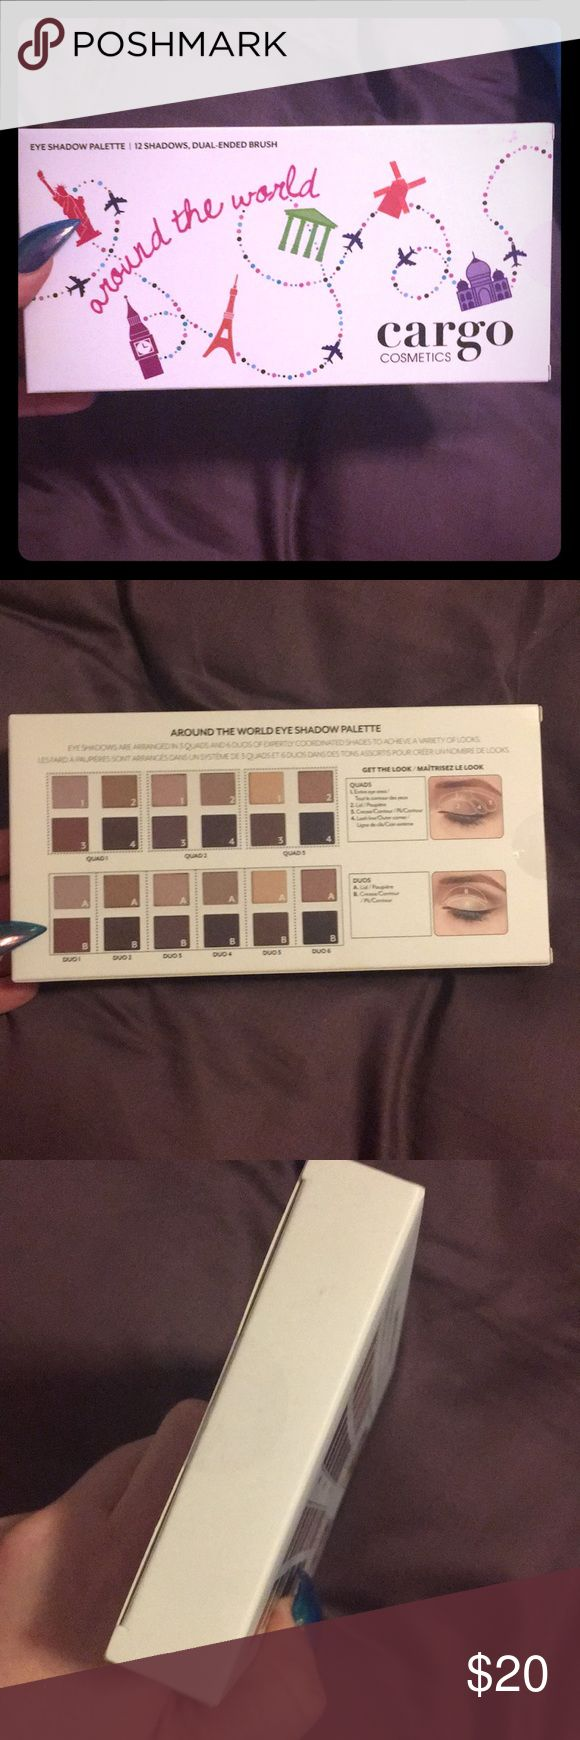 Around The World Cargo Cosmetics Eyeshadow New Around The World Cargo Cosmetics Eyeshadow Brand New, still sealed. I am just trying to downsize. Please let me know if you have any questions and please check out my other great items! Cargo Cosmetics Makeup Eyeshadow